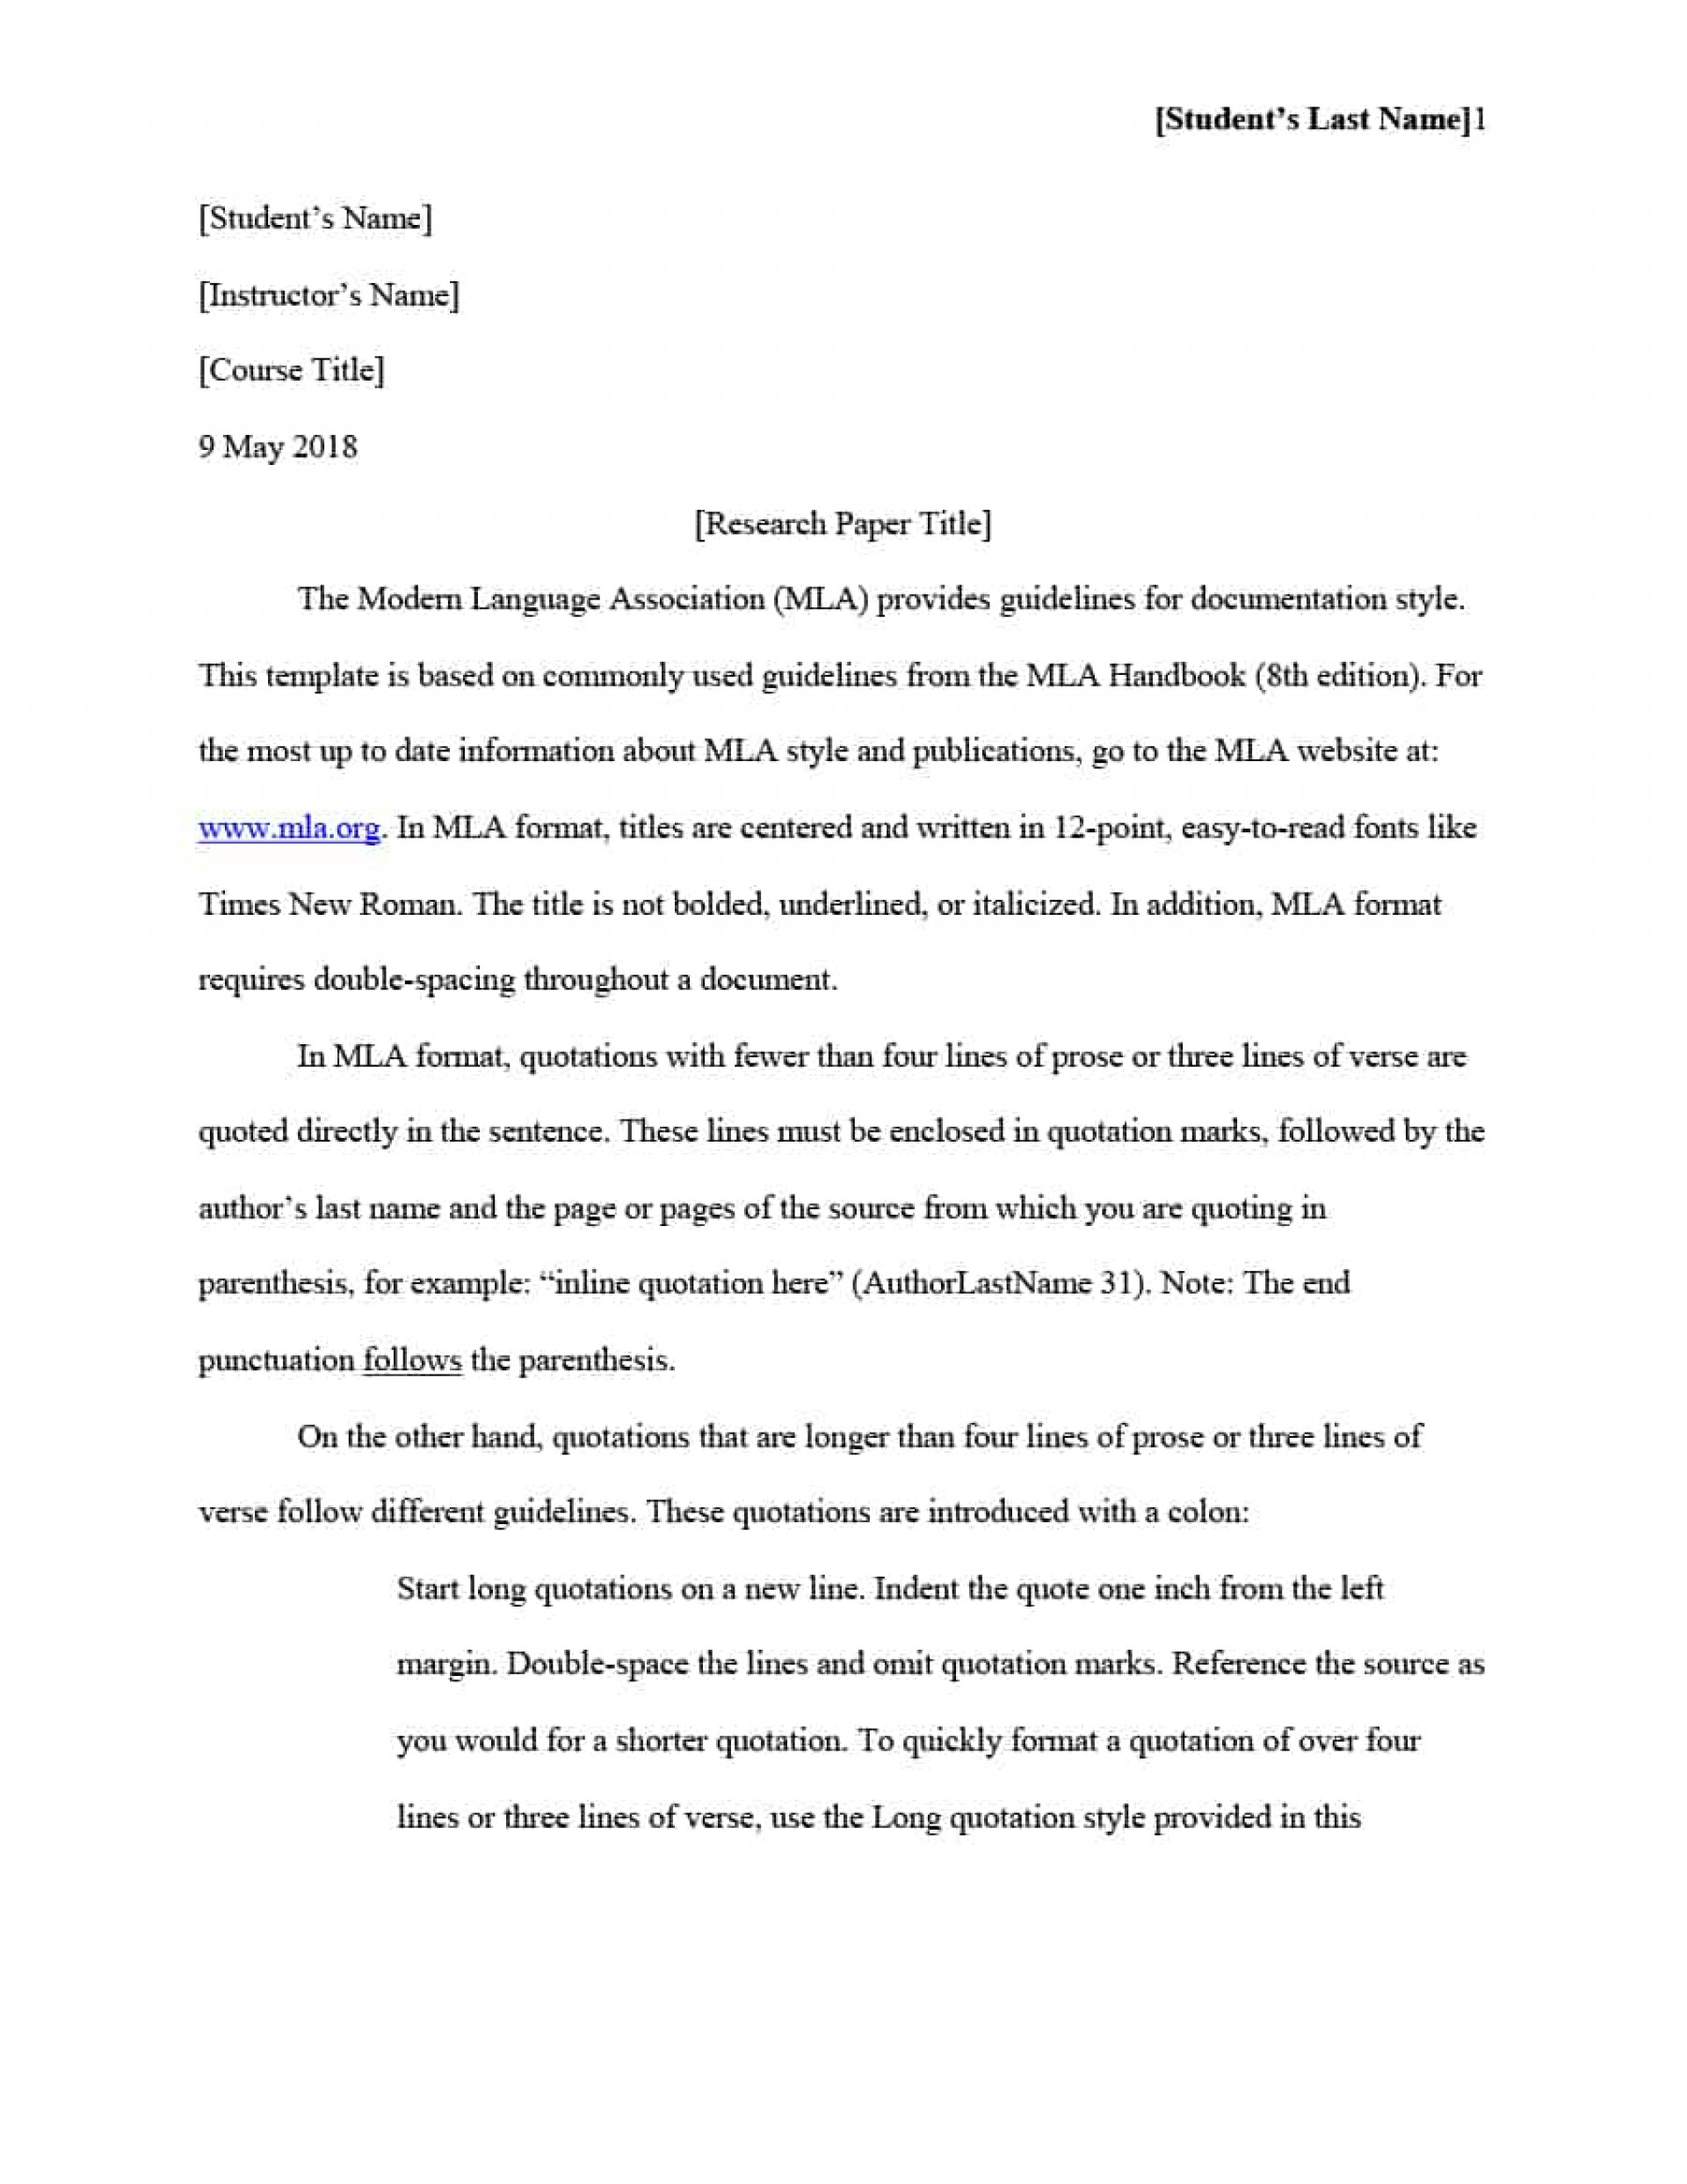 007 Mla Format Template Essay Example Phenomenal Formatted Title Page In Text Size 1920